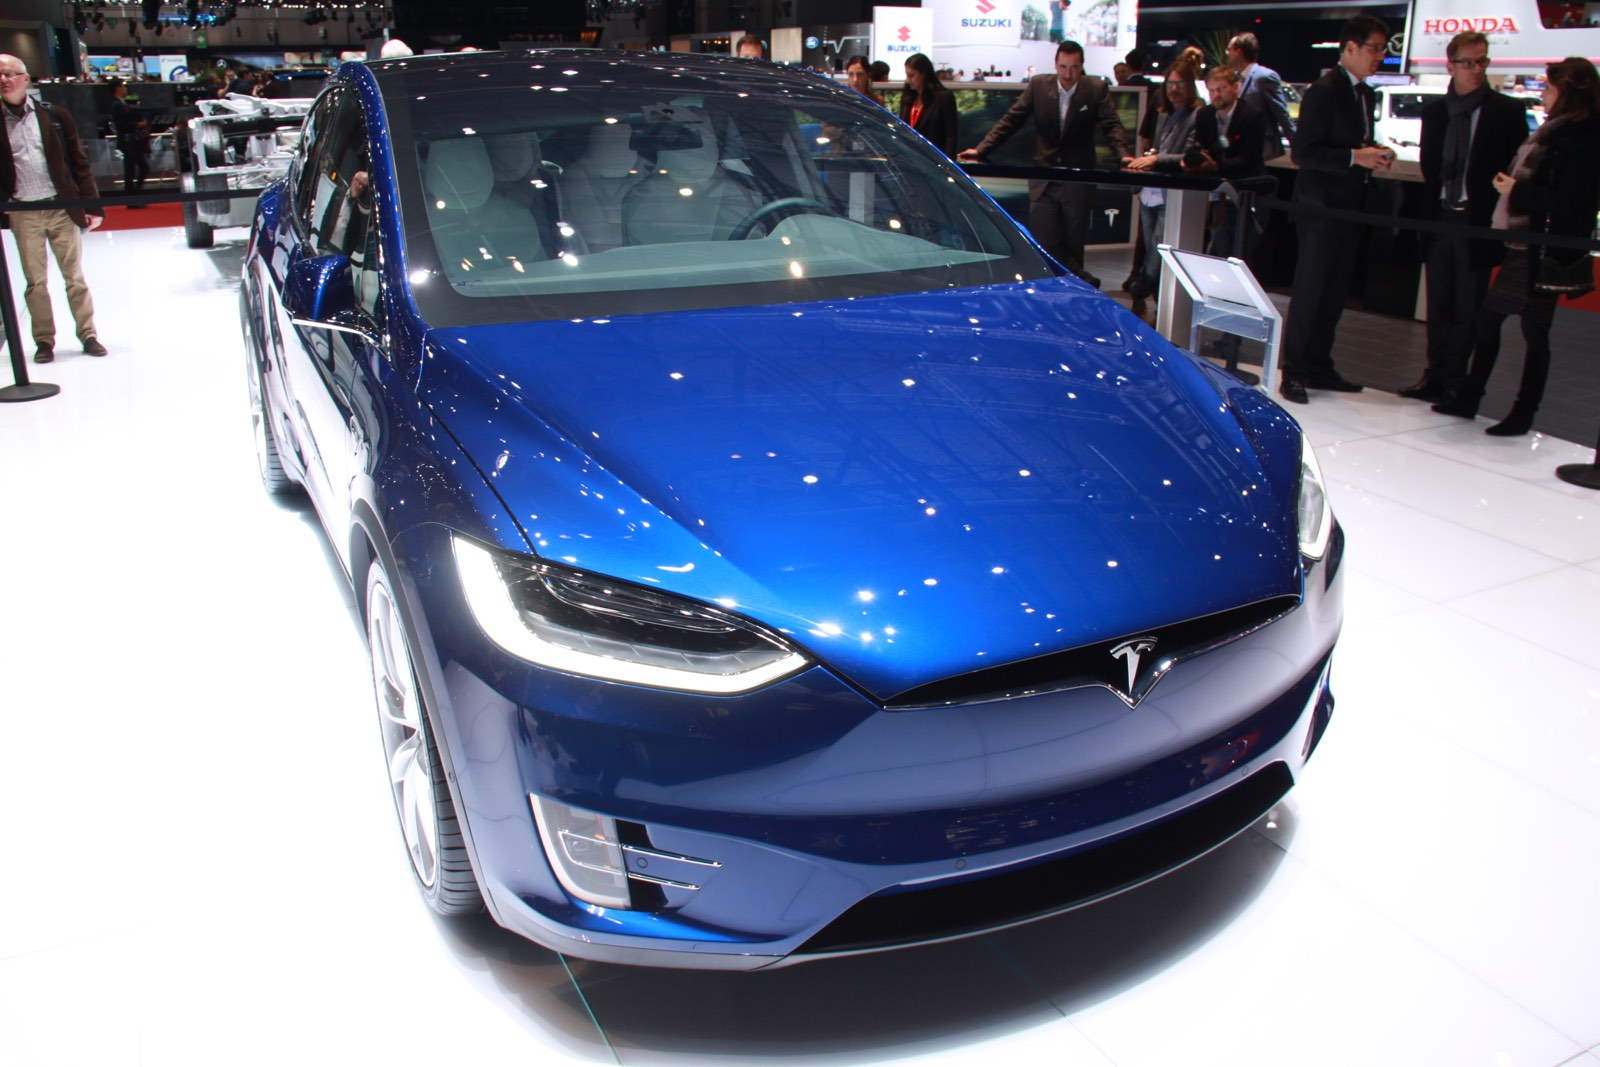 200 000 the amount ford paid for a used tesla model x gtspirit. Black Bedroom Furniture Sets. Home Design Ideas